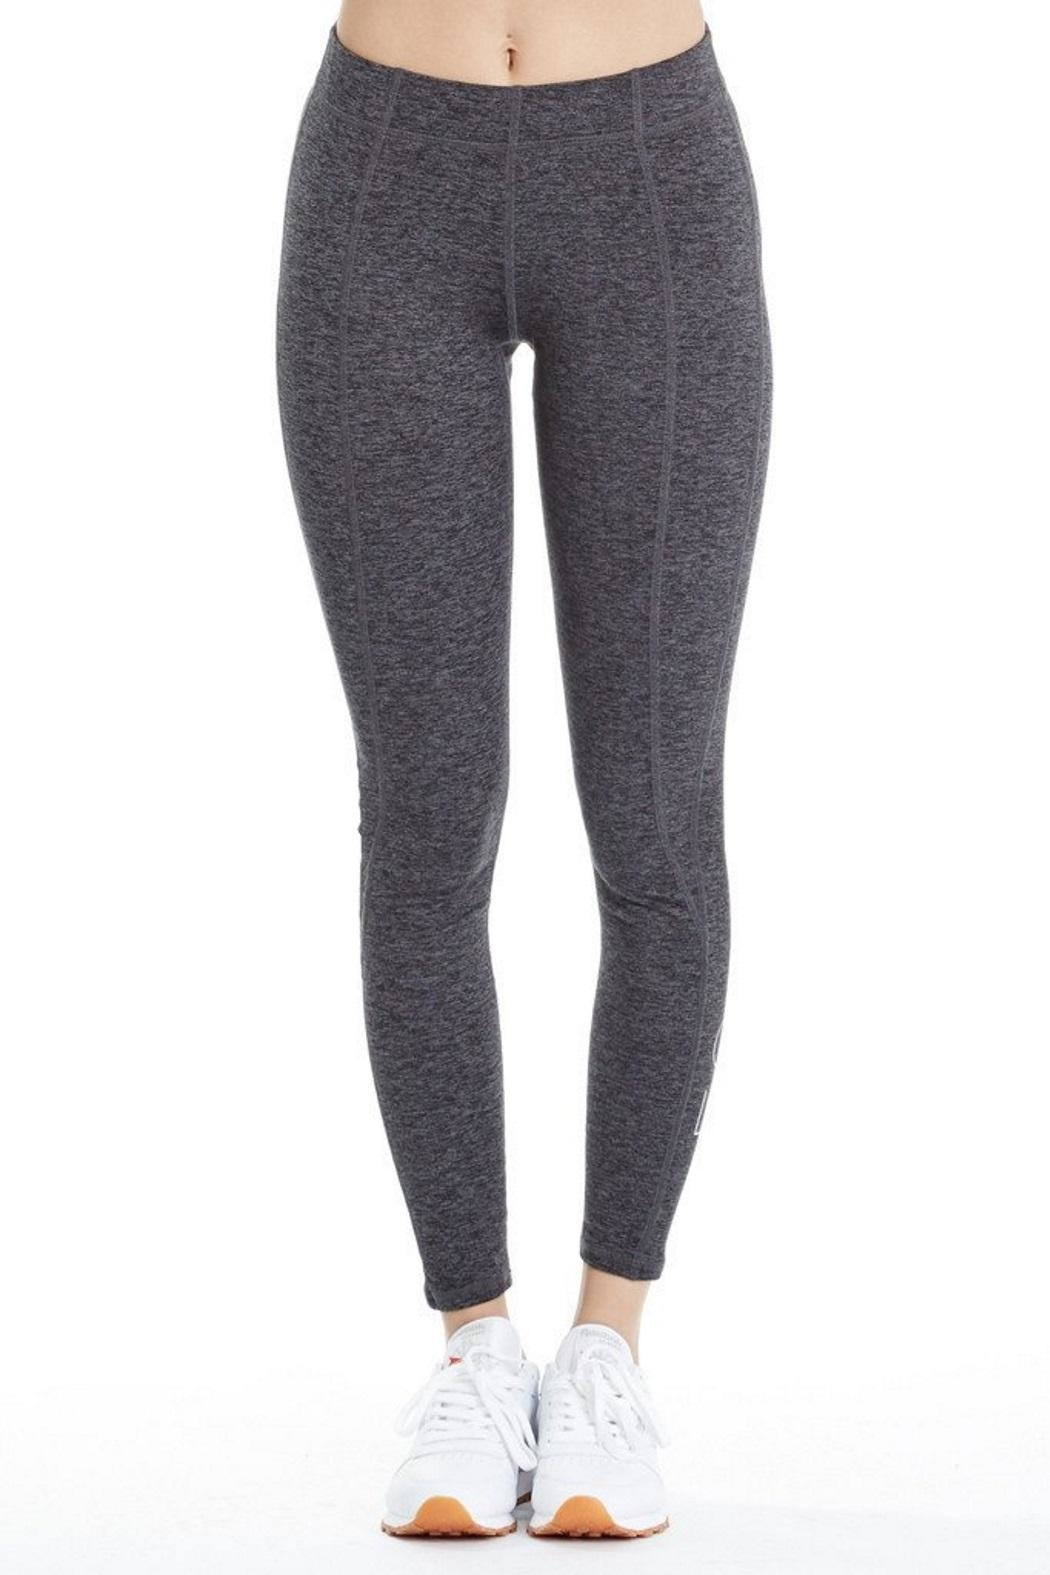 good hYouman Luna Calm Legging - Main Image